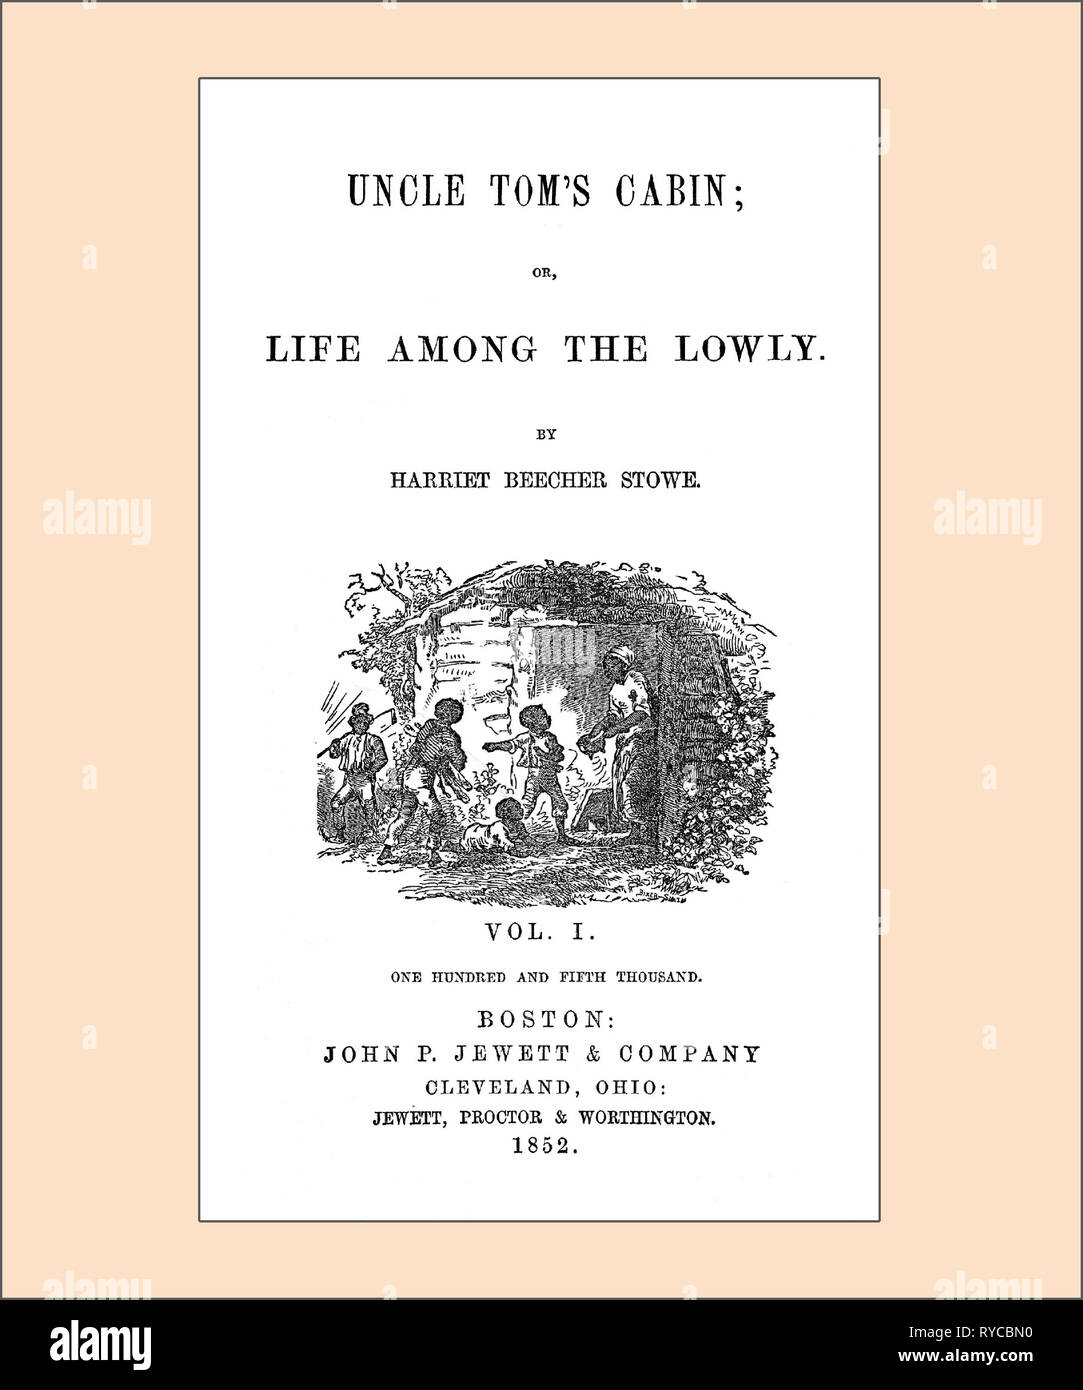 Uncle Tom's Cabin Title Page cleaned and re-set - Stock Image